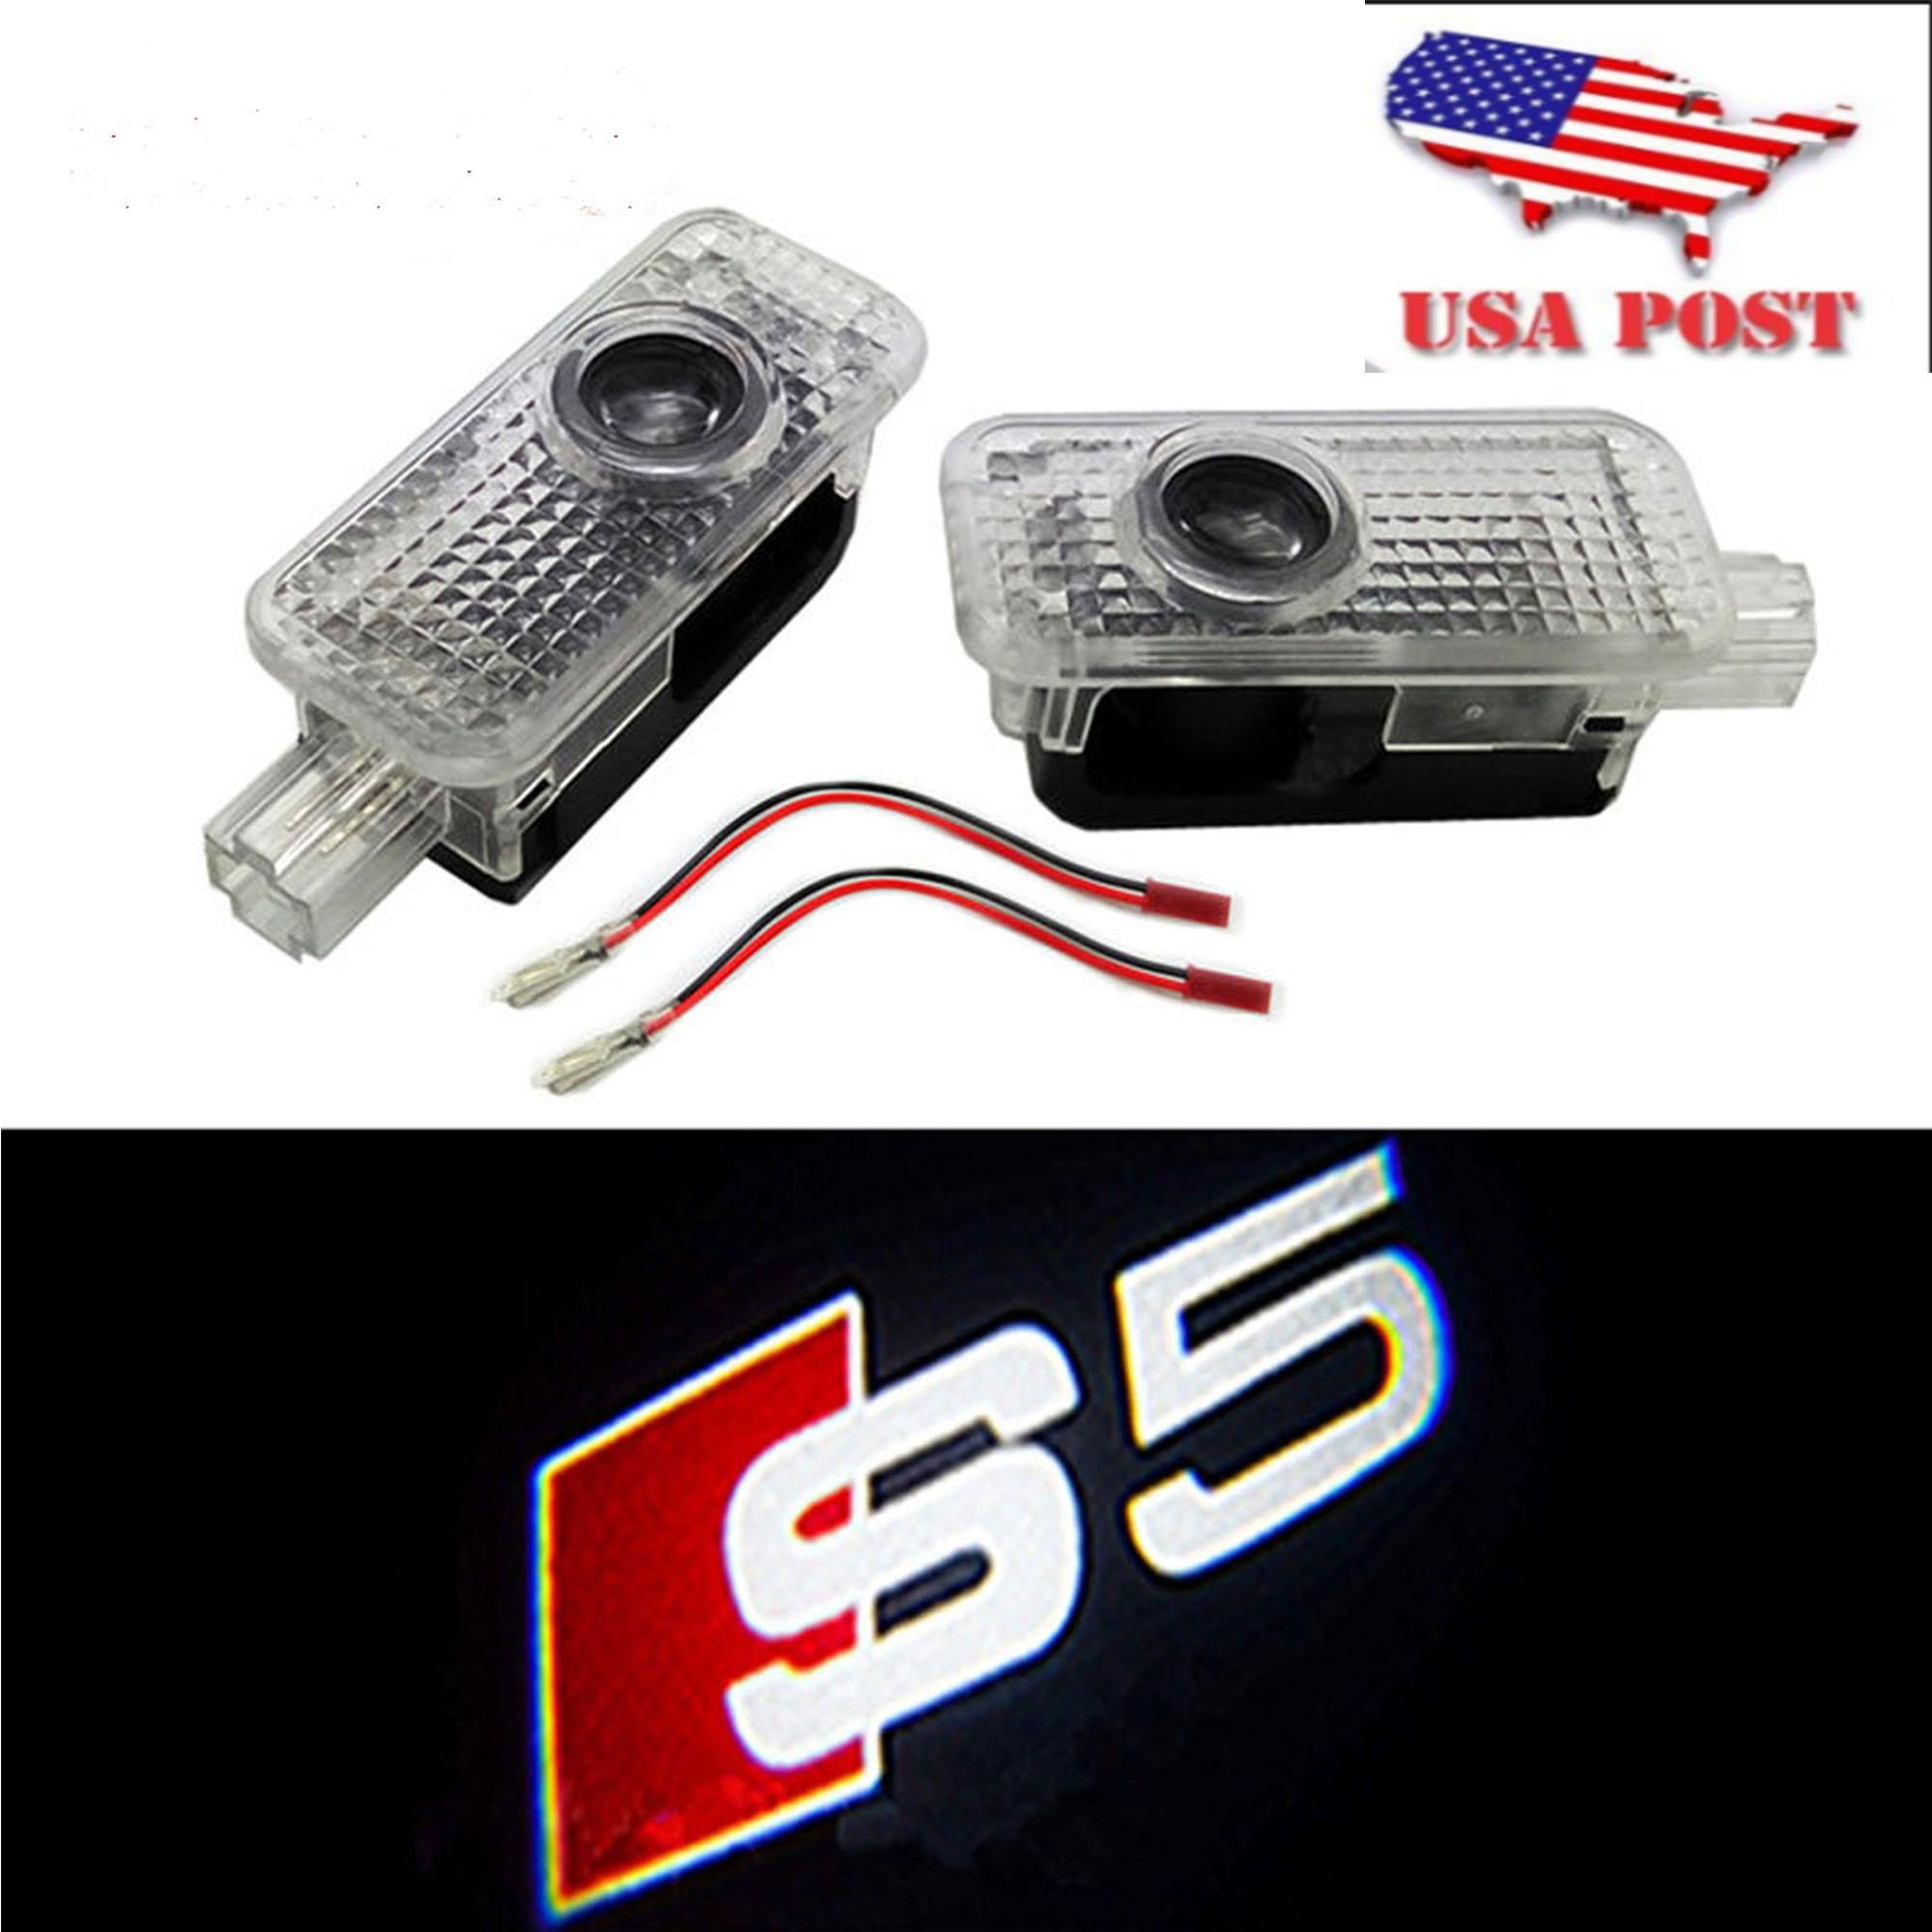 CNAutoLicht 2X Cree LED S5 Logo Door Step Courtesy Light Welcome Light Laser Shadow Logo Projector Lamp For Audi A1 A2 A3 A4 A5 A6 A7 A8 Q2 Q3 Q6 Q5 Q7 R8 TT RS4 RS5 RS6 RS7 S3 S4 S5 S6 S7 S8